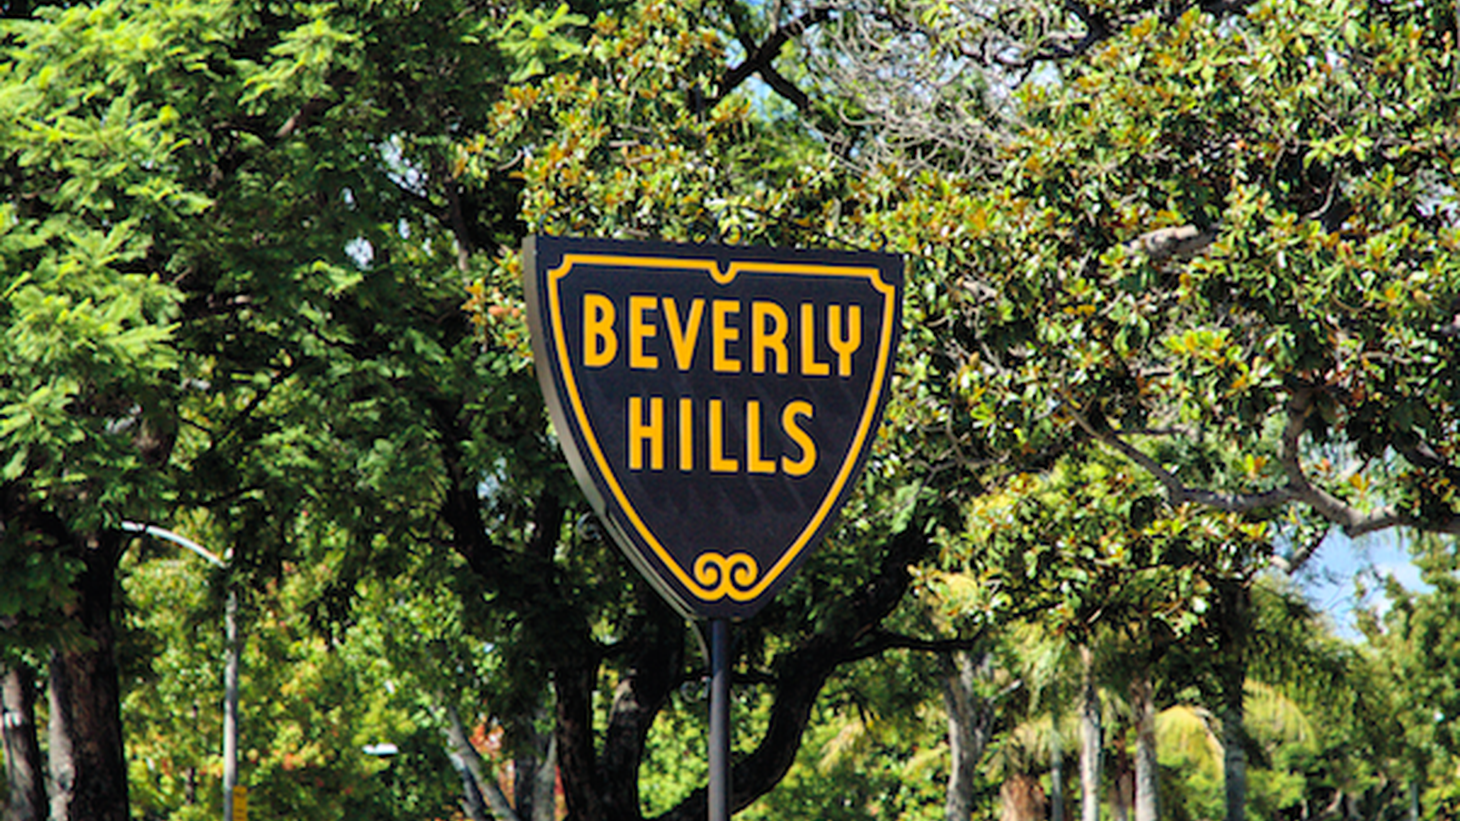 Despite its small size, the city of Beverly Hills packs a lot of political power. That's not a surprise, given the big names who live there.